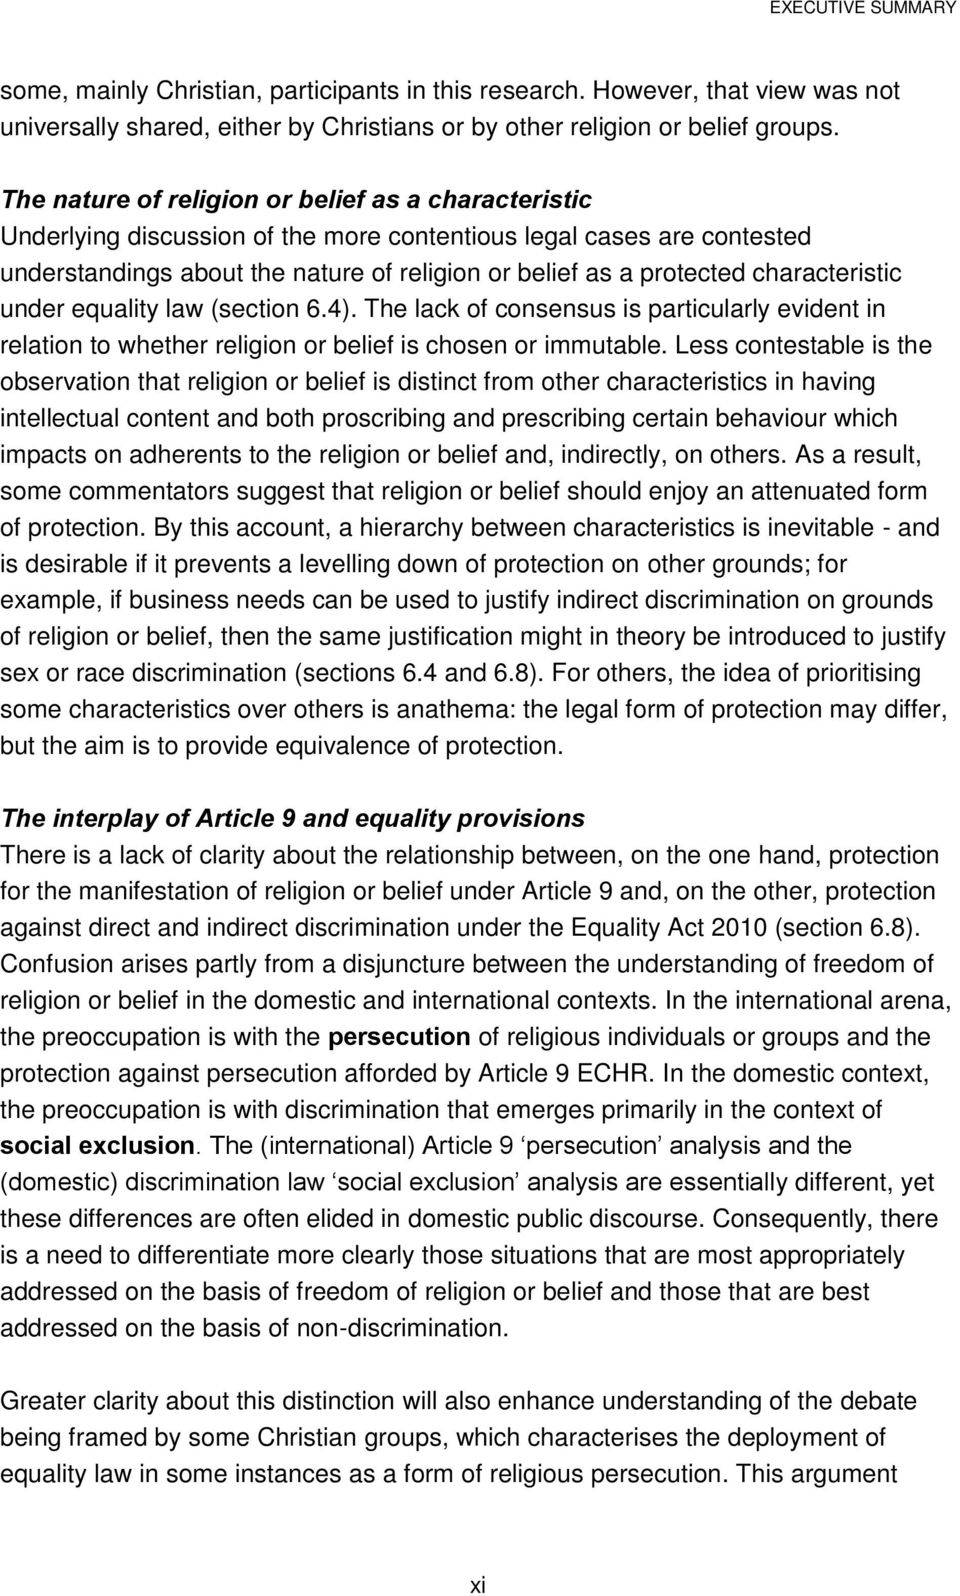 characteristic under equality law (section 6.4). The lack of consensus is particularly evident in relation to whether religion or belief is chosen or immutable.